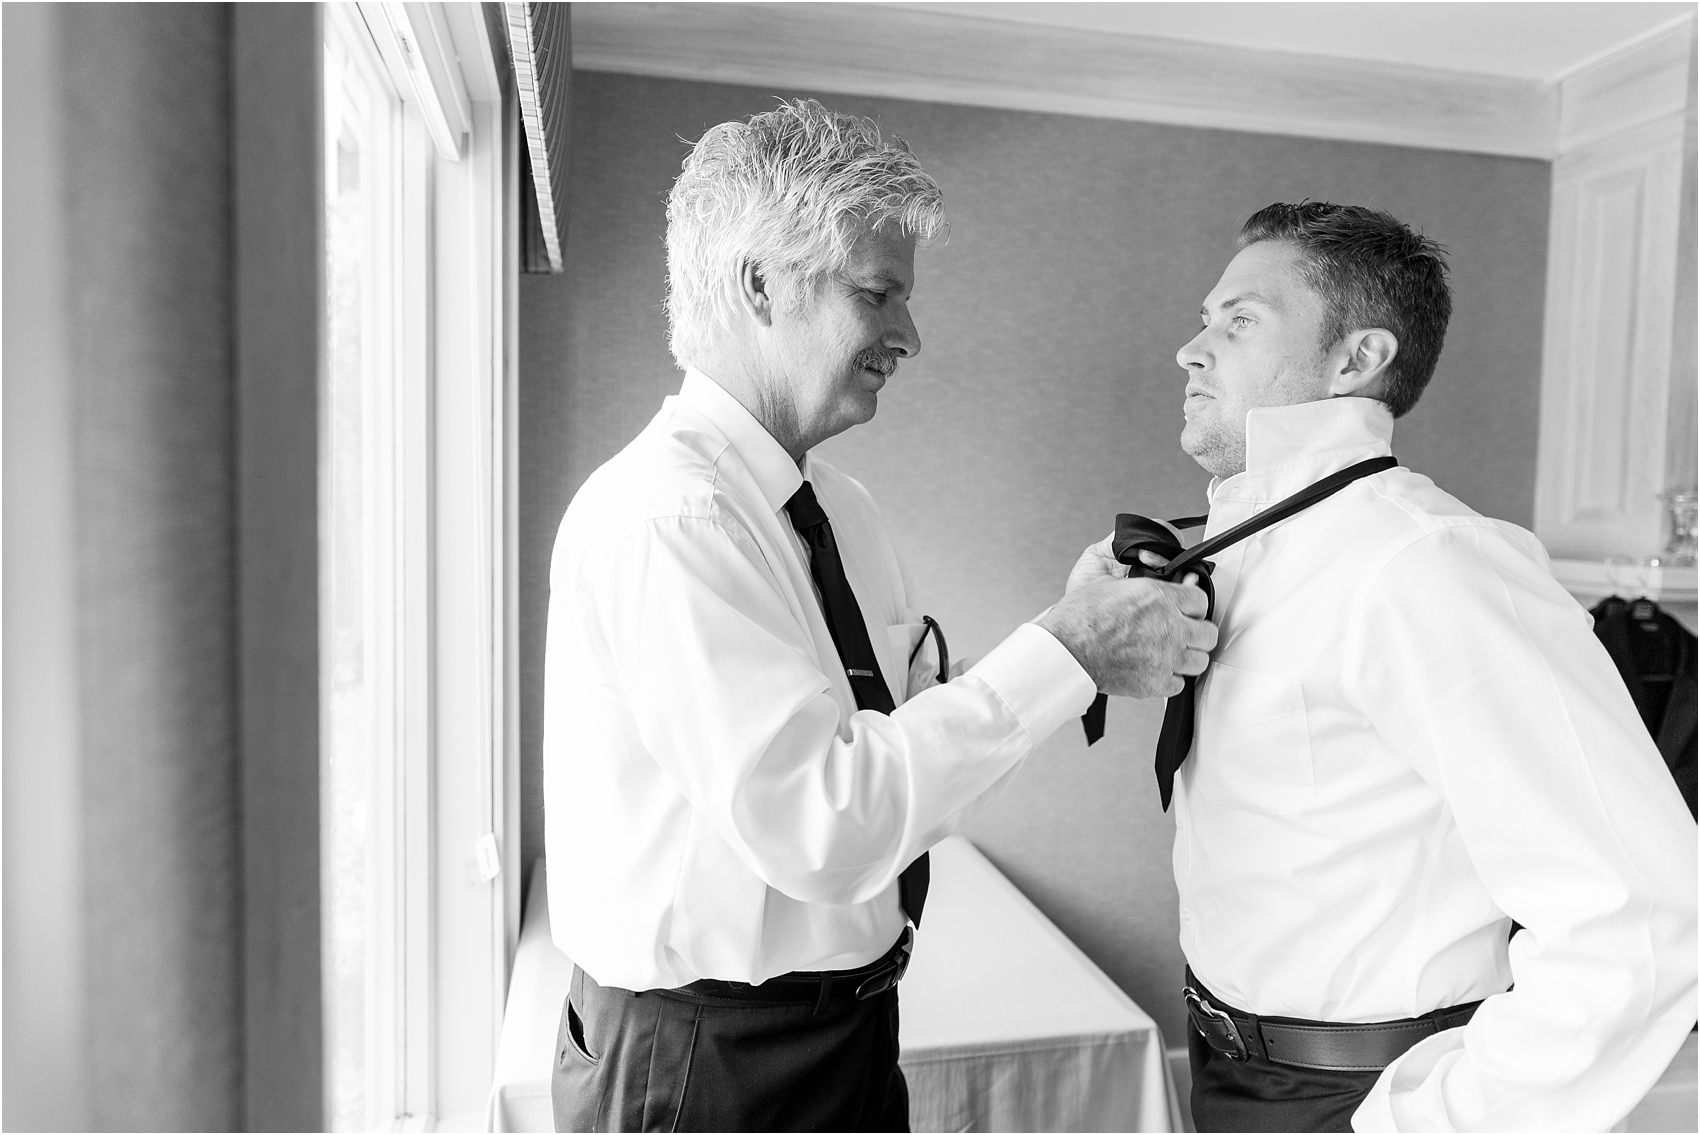 classic-wedding-photos-at-great-oaks-country-club-in-rochester-hills-mi-by-courtney-carolyn-photography_0004.jpg